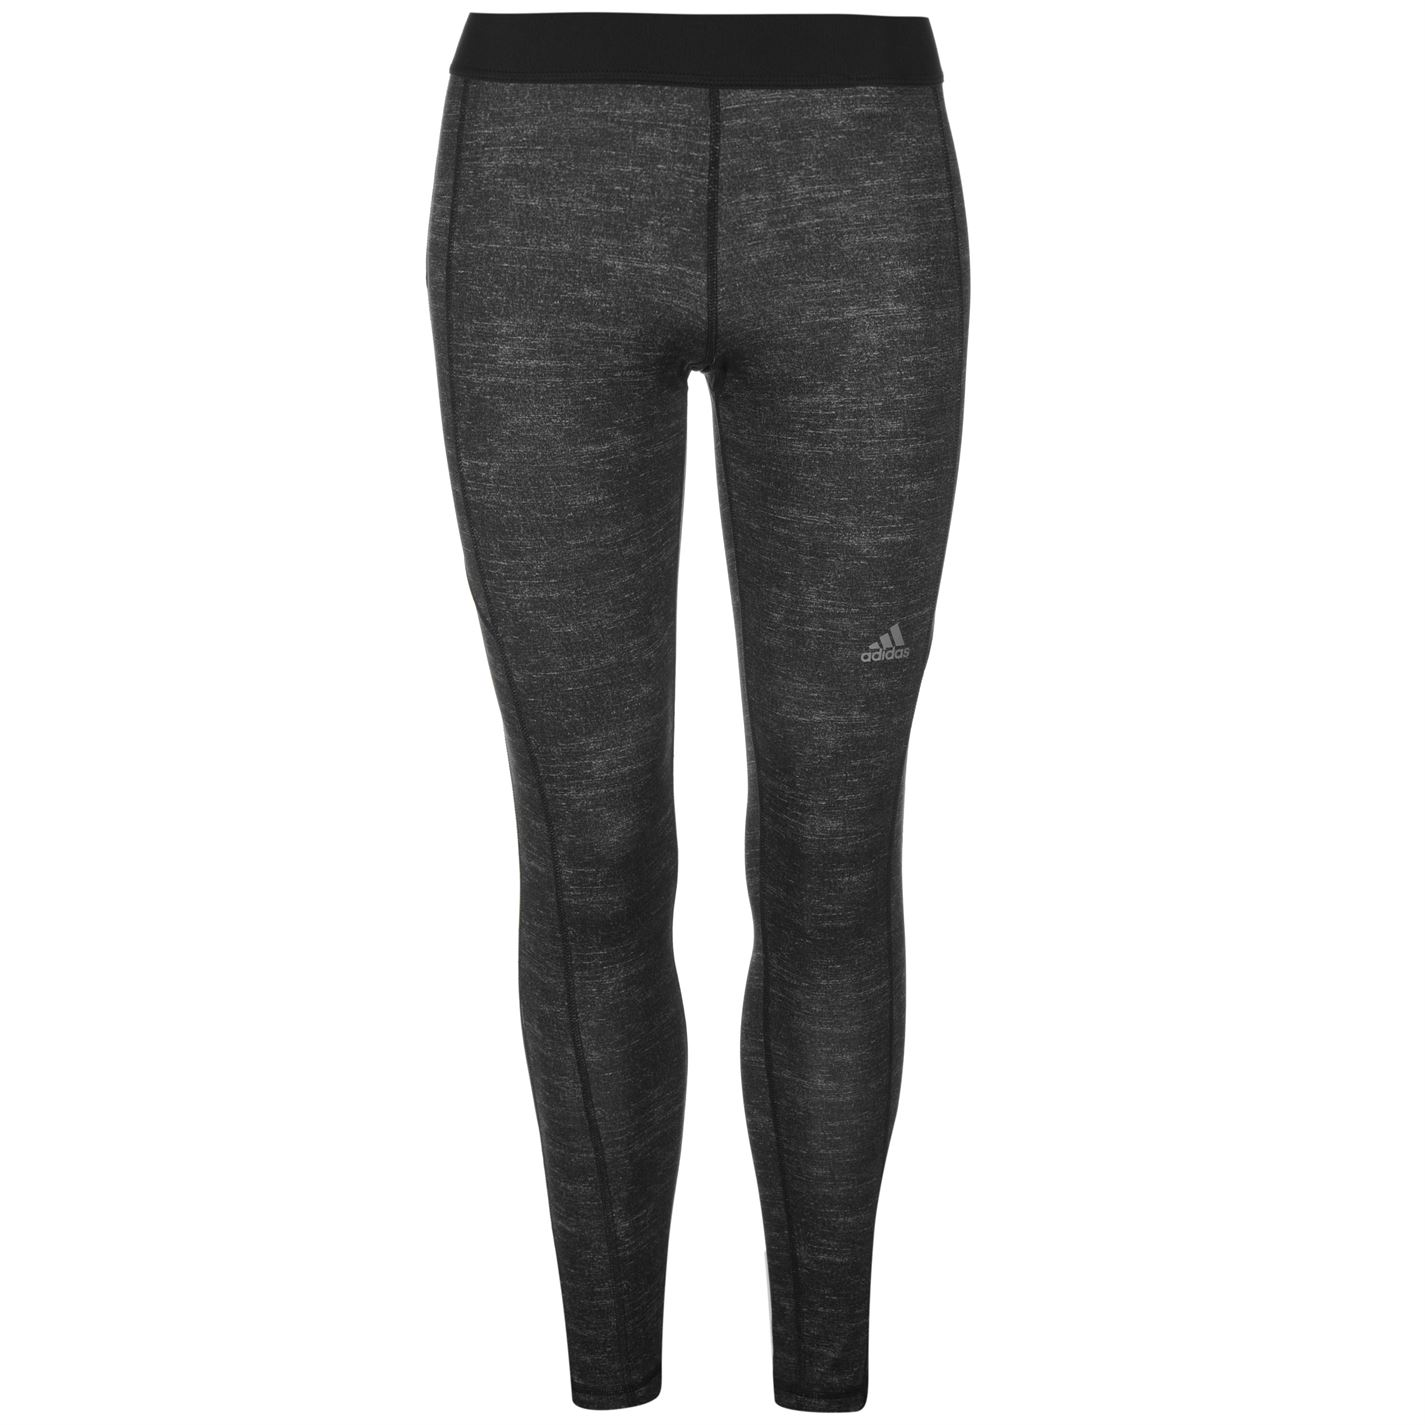 adidas techfit damen tight lang lauftights leggings fitness hose yoga s xxl neu ebay. Black Bedroom Furniture Sets. Home Design Ideas